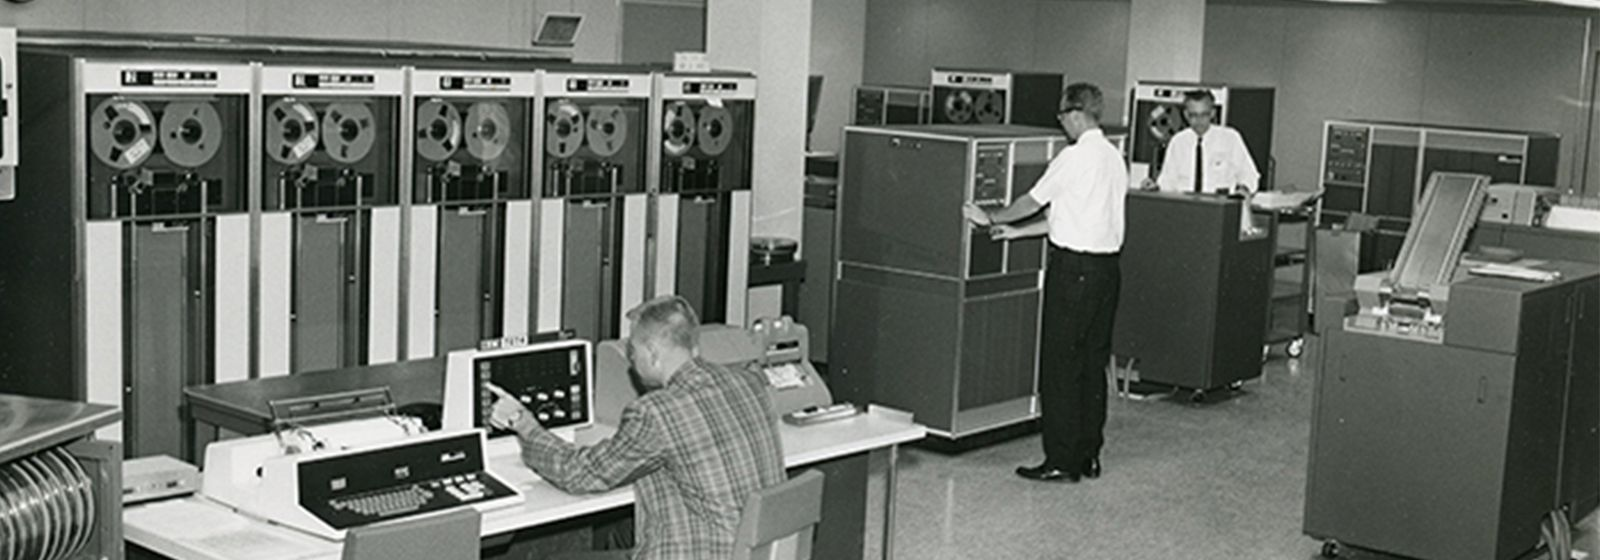 When high-tech computers needed a whole room